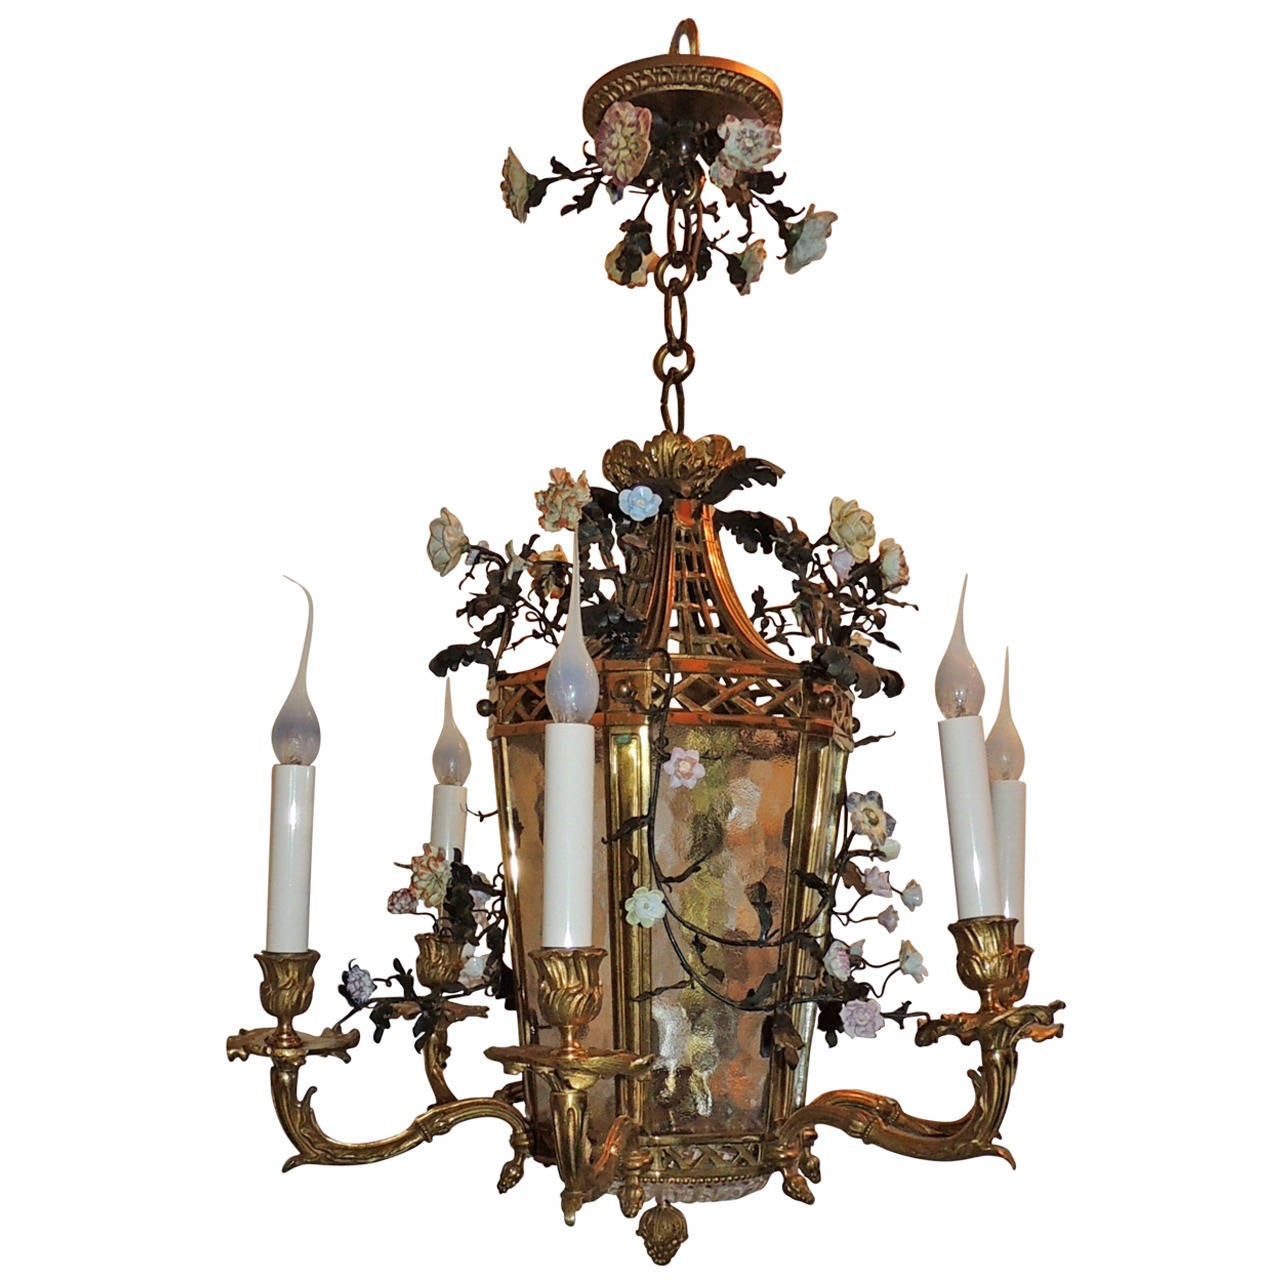 Wonderful French Dore Bronze Five-Light Lantern Chandelier Porcelain Flowers